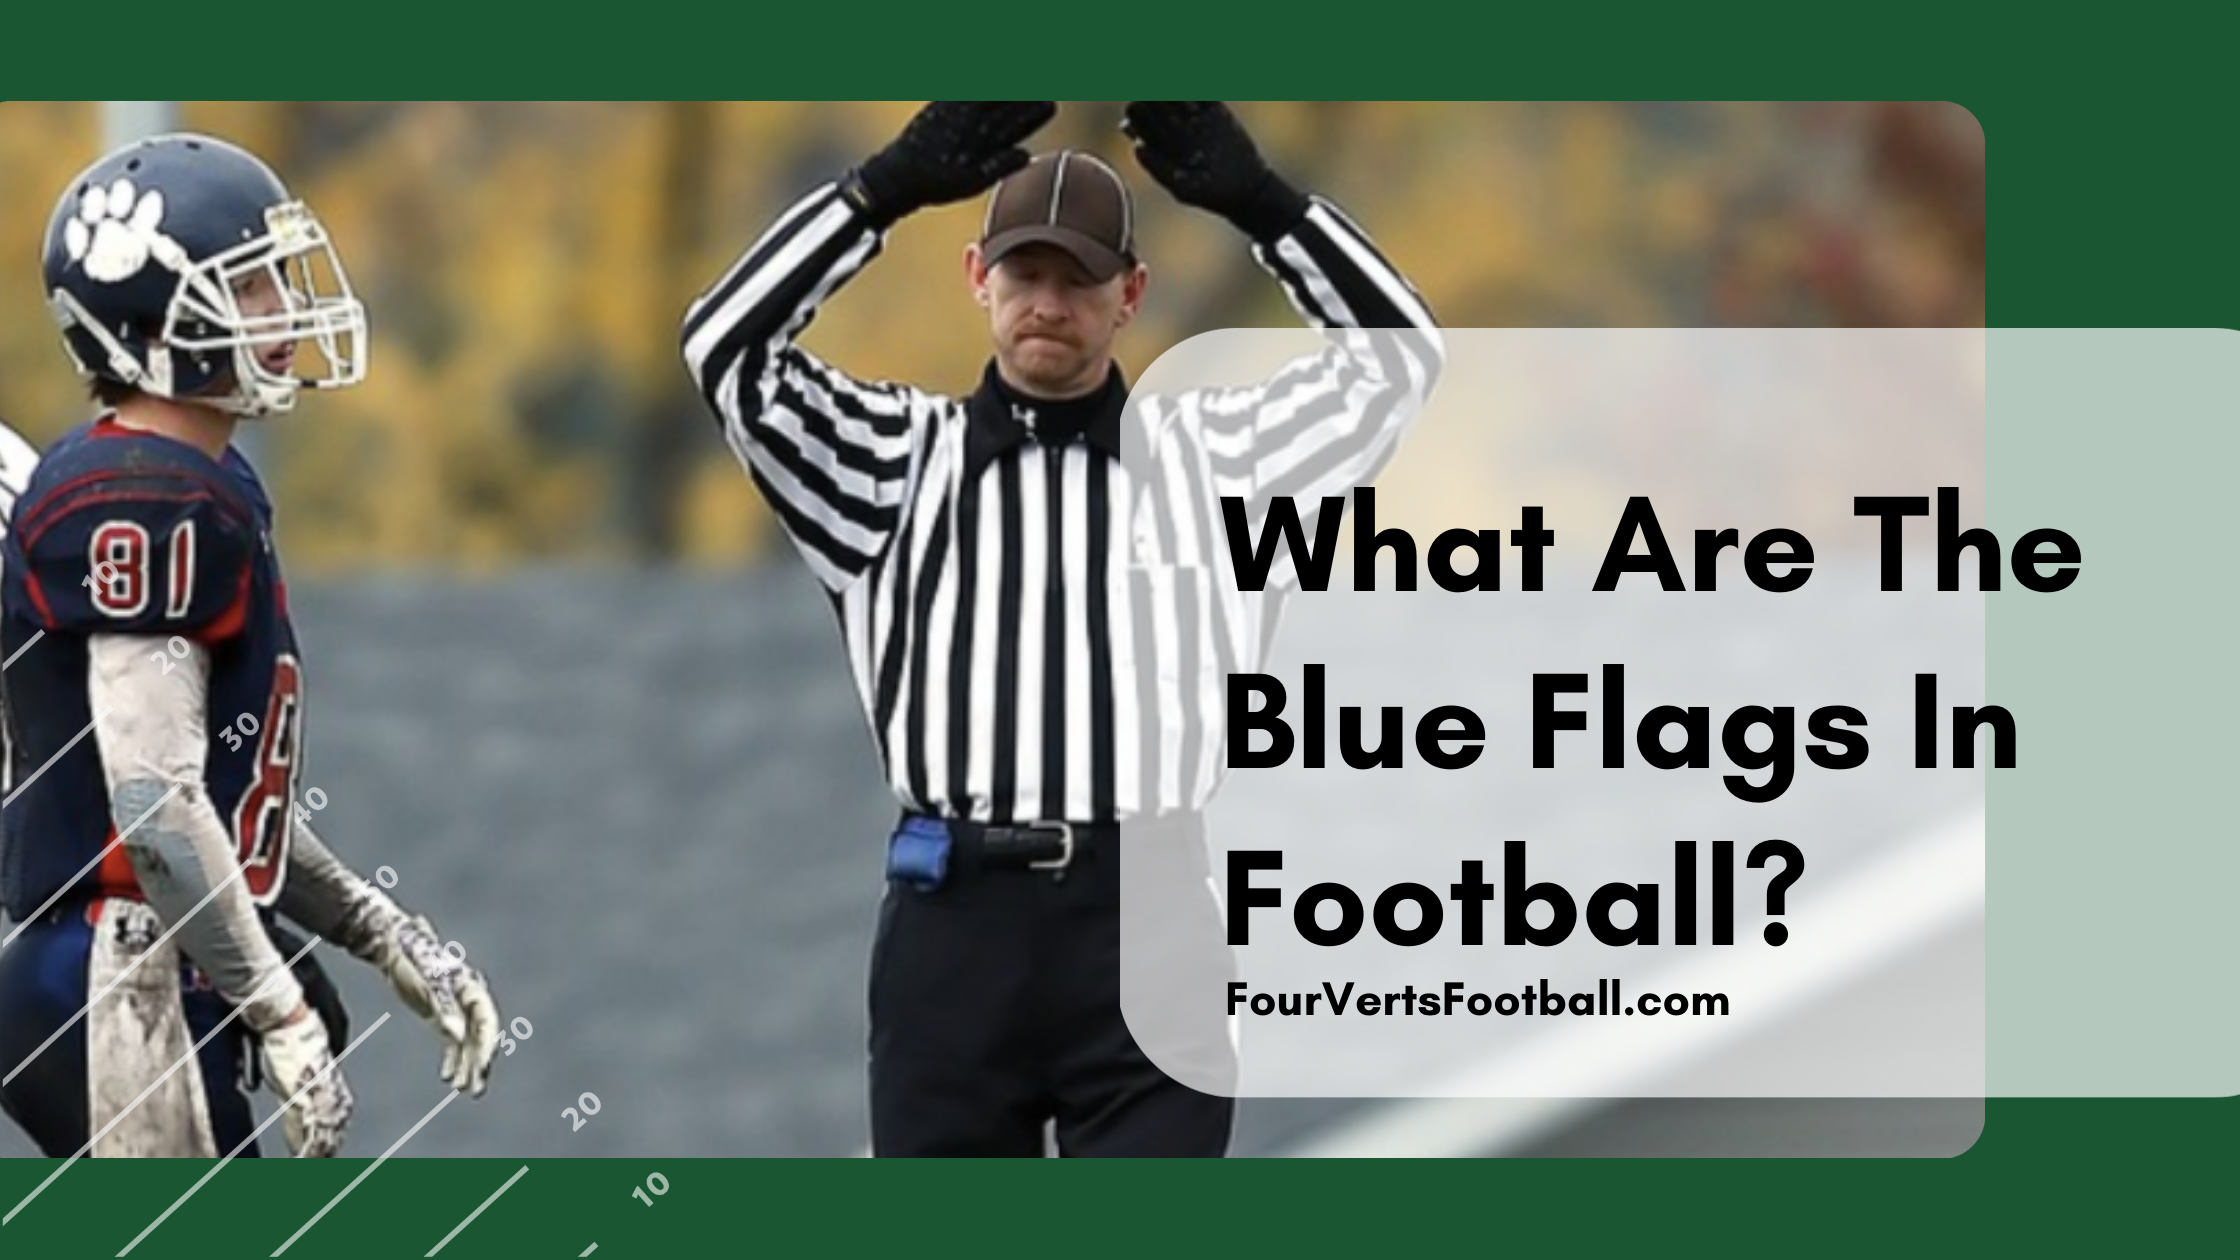 Blue flags in football